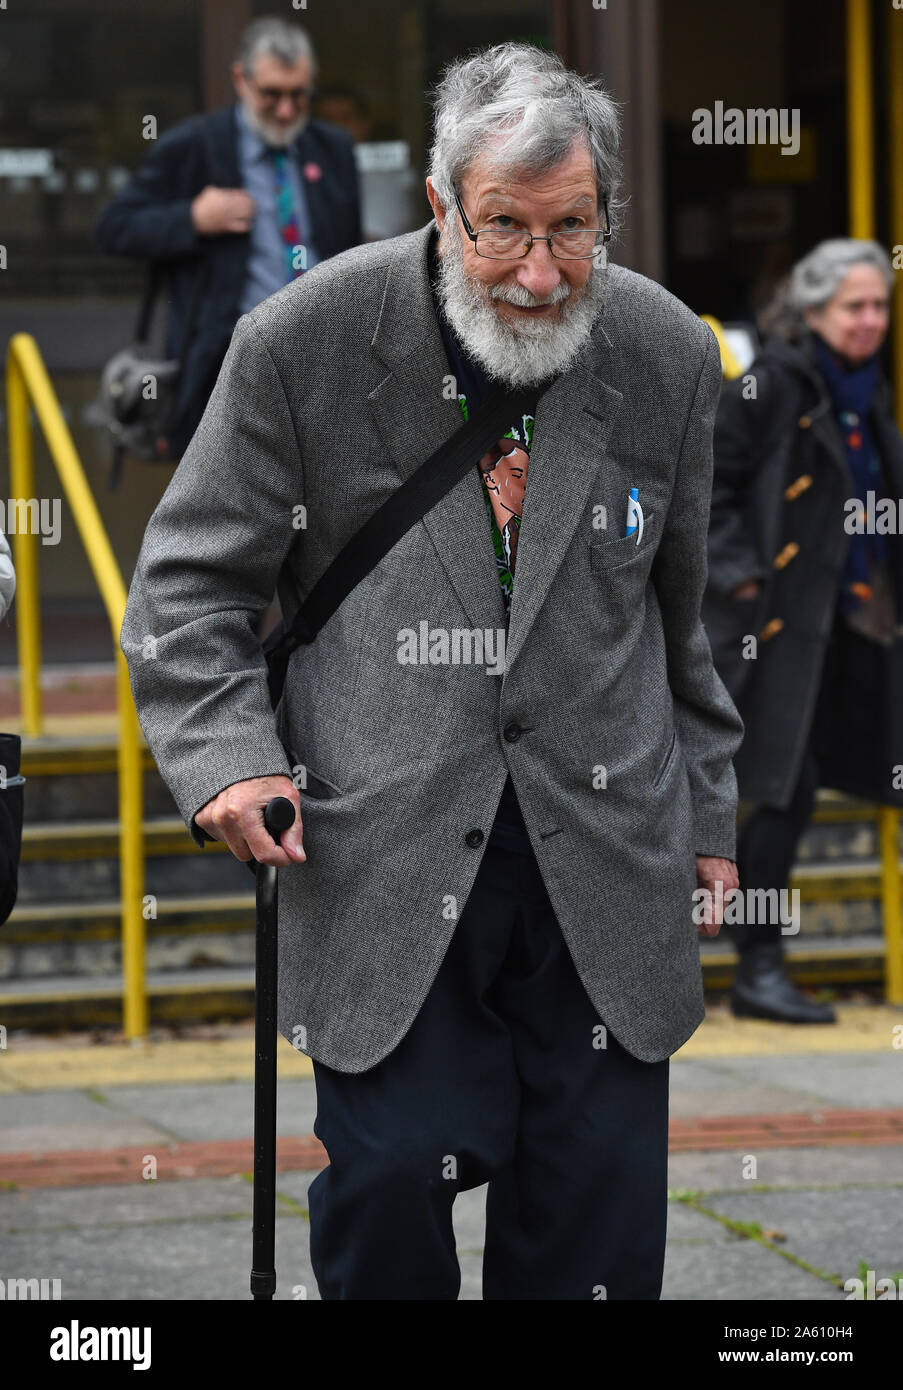 Extinction Rebellion activist John Lynes, 91, leaving Folkestone Magistrates' Court where he denied disobeying a police condition during a demonstration as Extinction Rebellion activists sought to blockade the Port of Dover. Stock Photo